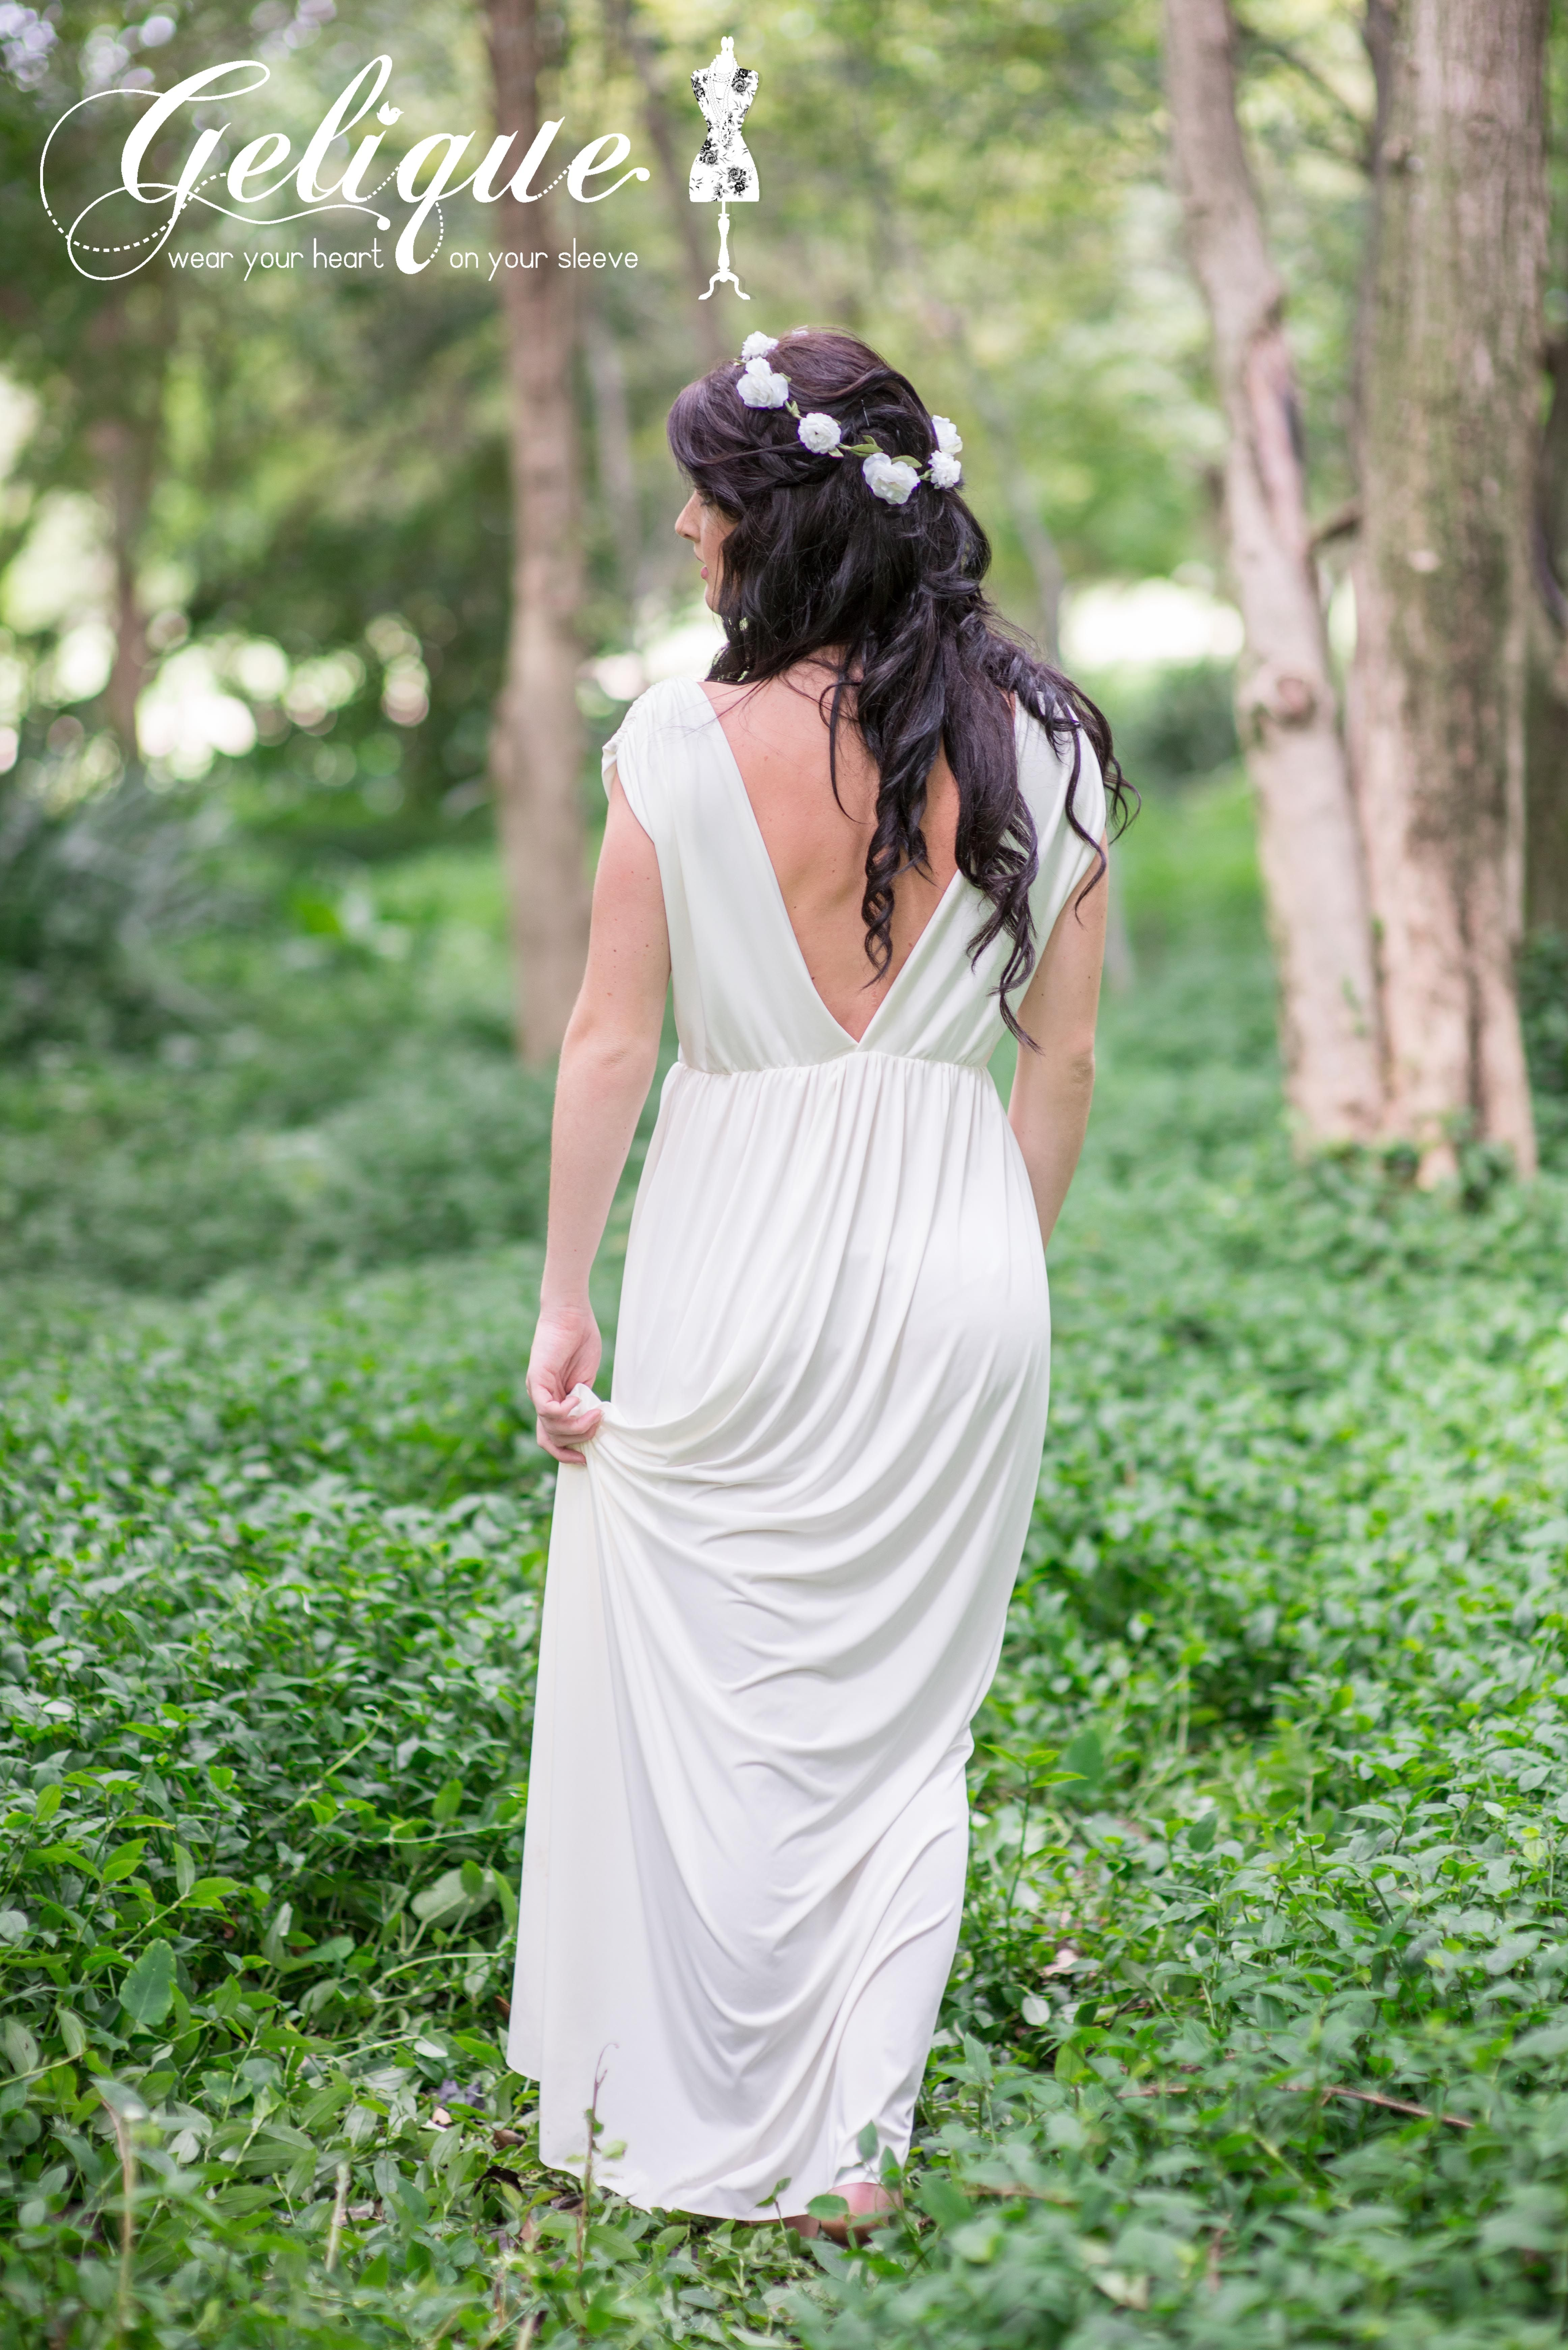 Rose Gelique bridesmaids dress. Soft pink or ivory dress. Empire style convertible bridesmaids dress with plunging back. Available in a variety of sizes and colours from Brides of Somerset. Long, knee-length or short available.